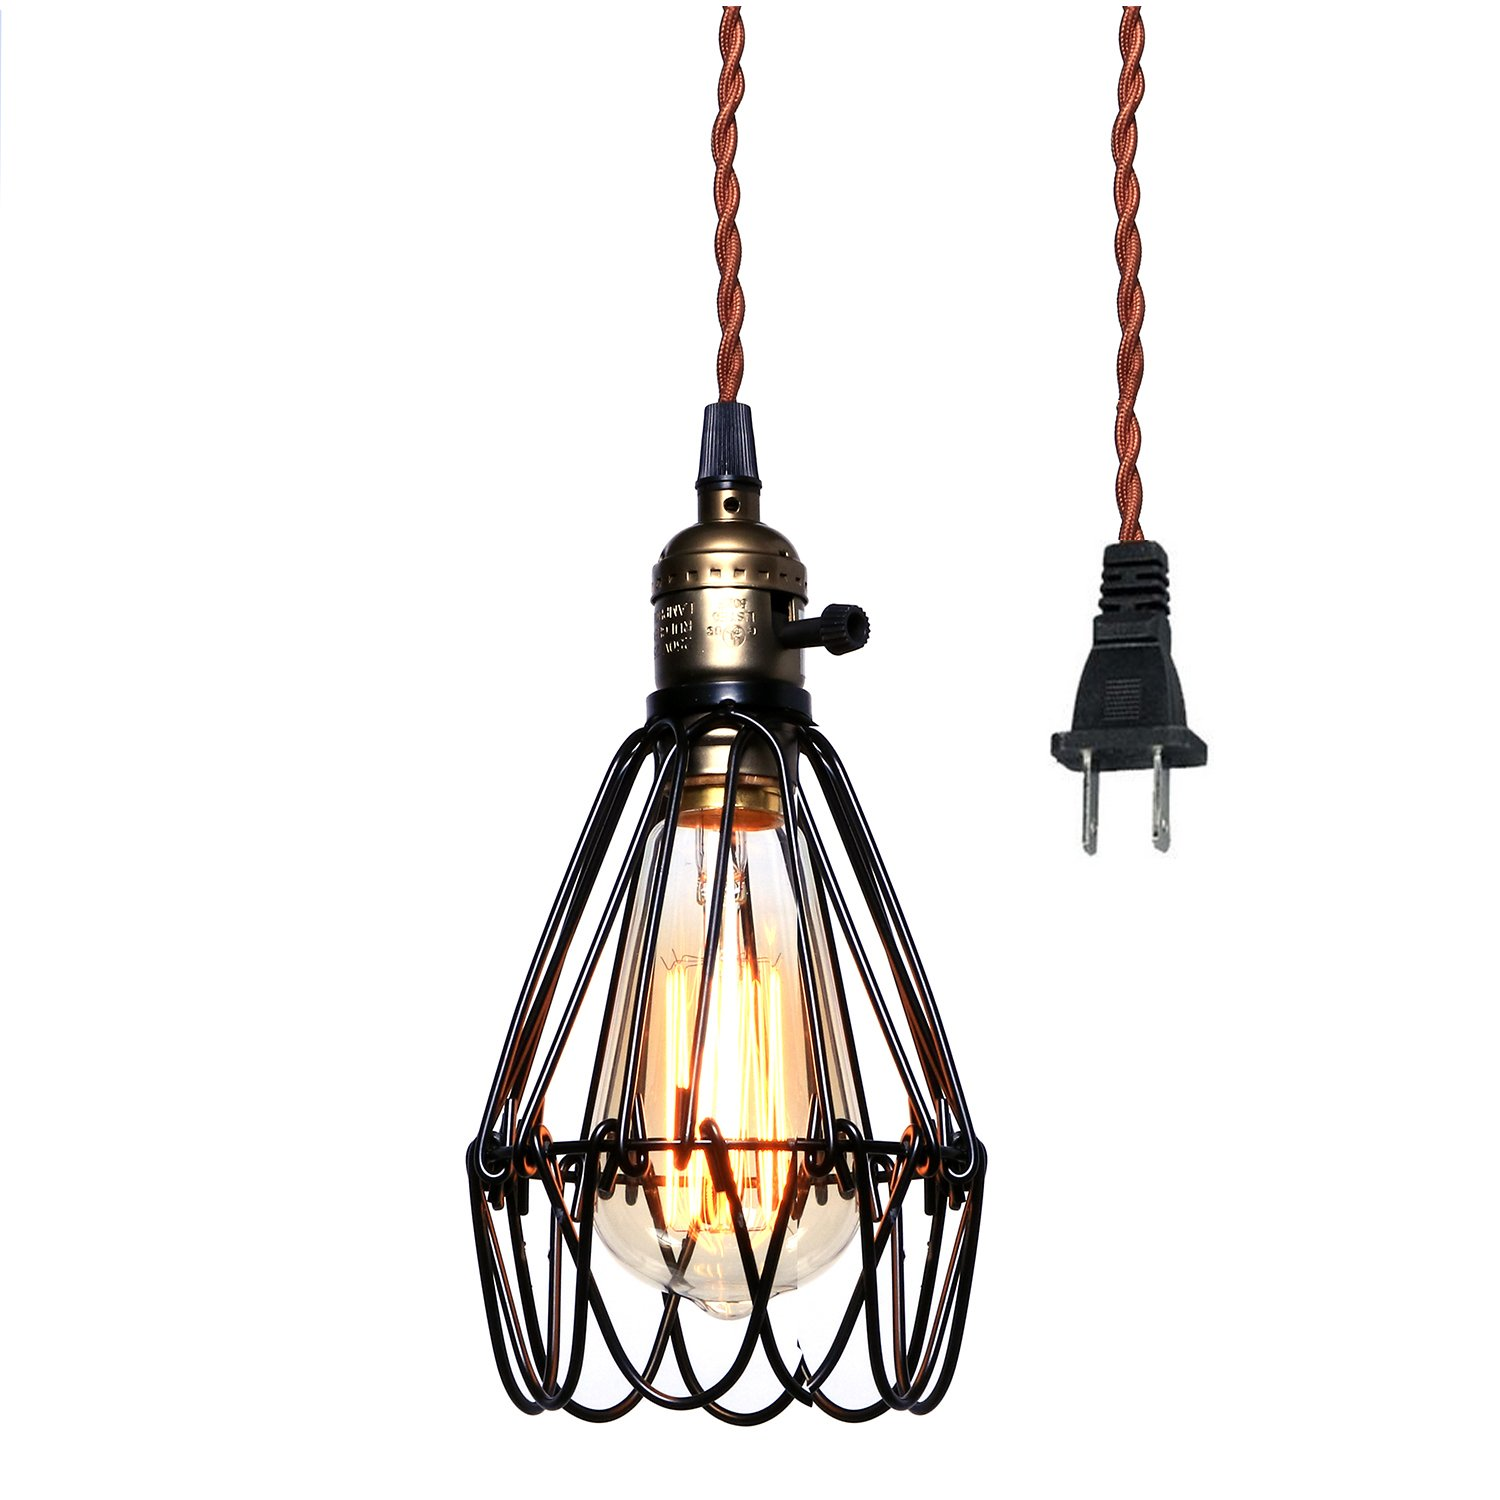 Vintage Pendant Light, Pauwer Wire Cage Lamp Plug-in Edison Pendant Light Cage with On/off switch